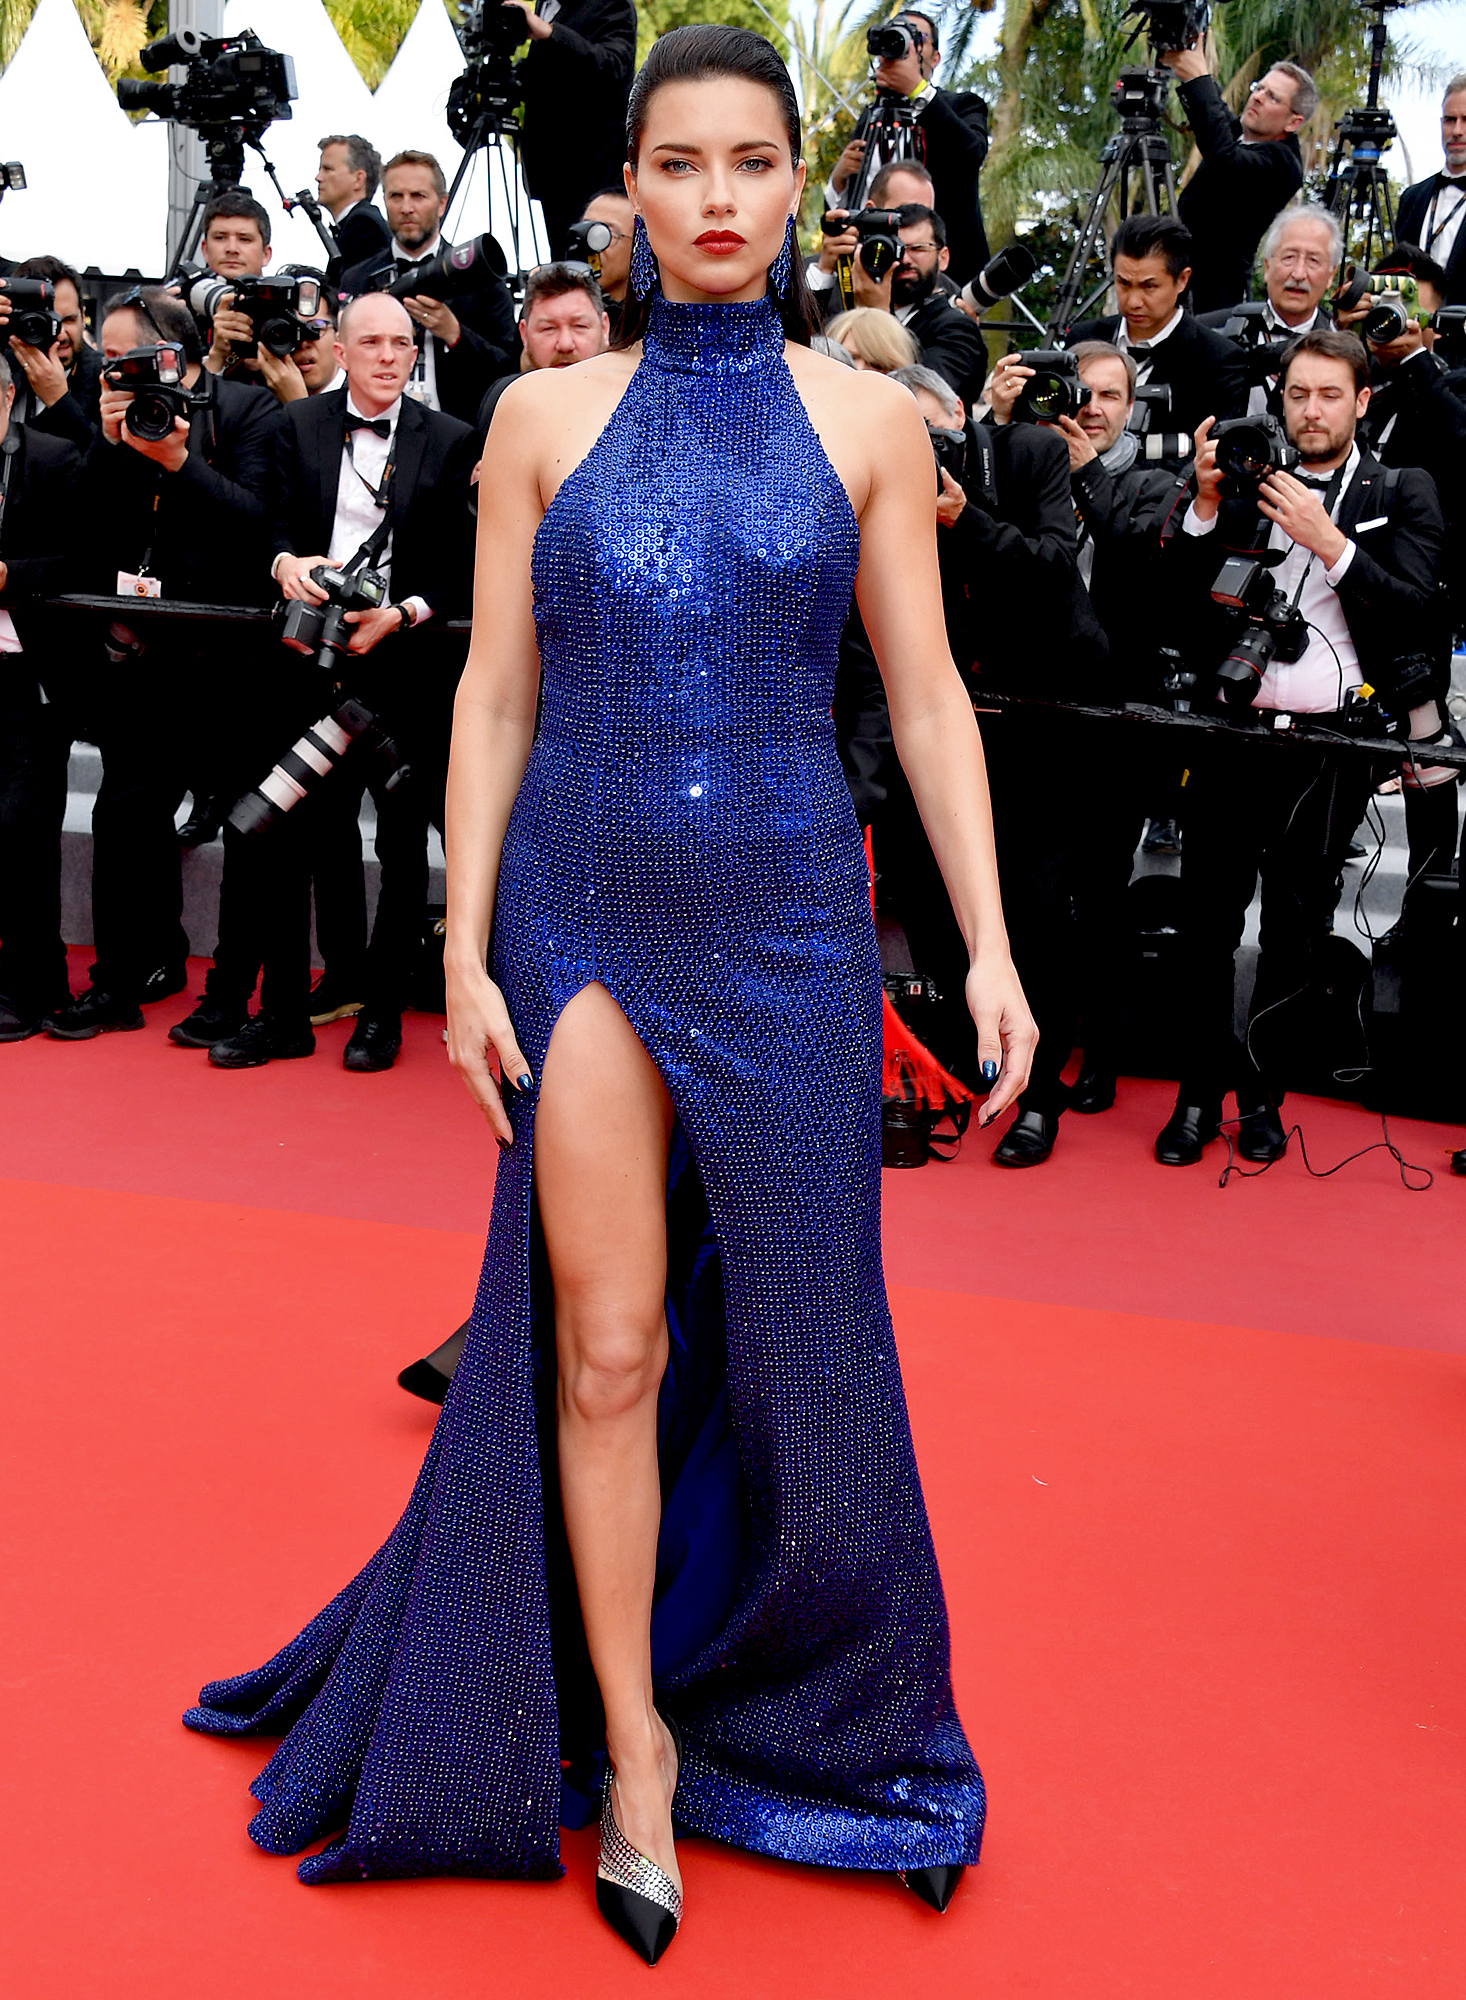 Adriana-Lima - At the Oh Mercy! screening on Wednesday, May 22, the model sparkled in a Michael Kors mock-neck gown.